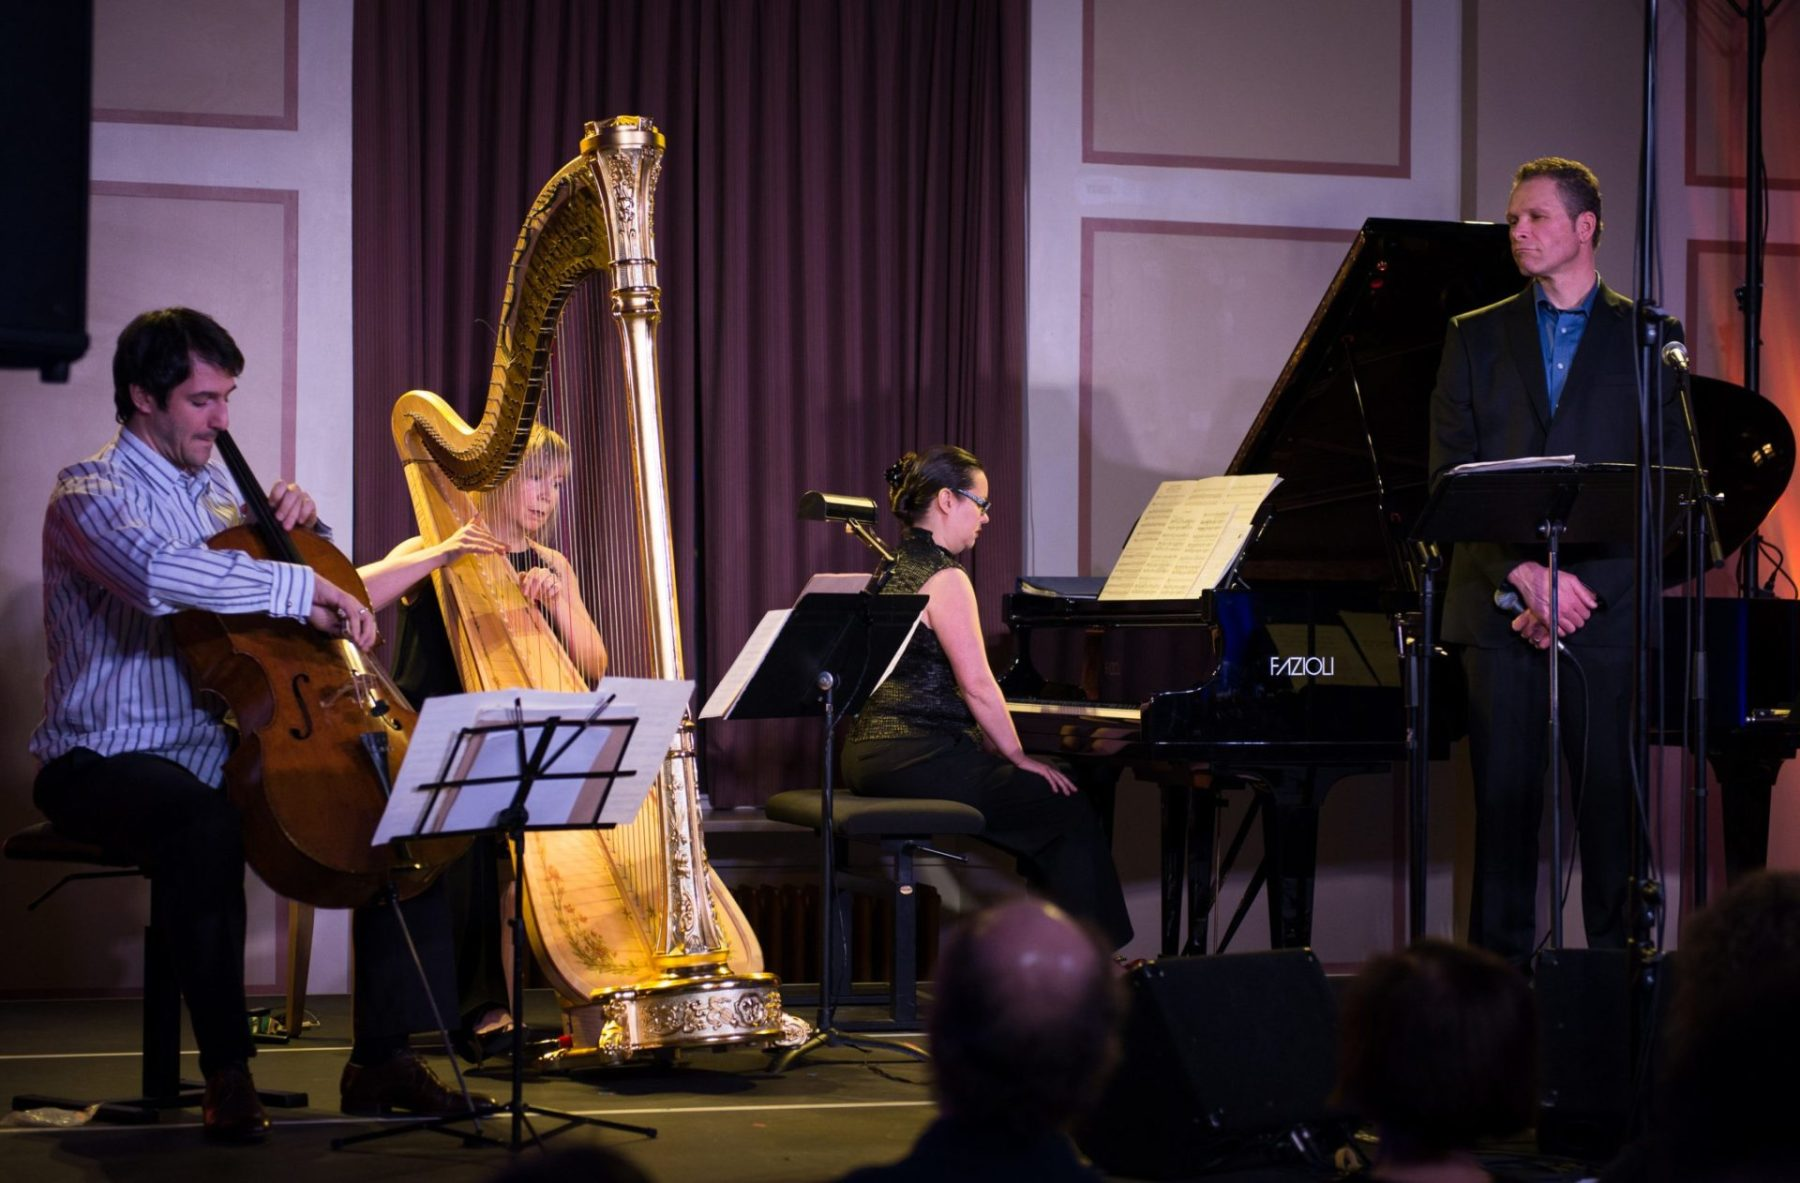 Ariel Barnes, Heidi Krutzen, Rachel Kiyo Iwaasa & Steve Maddock, Music for the Winter Solstice 2014